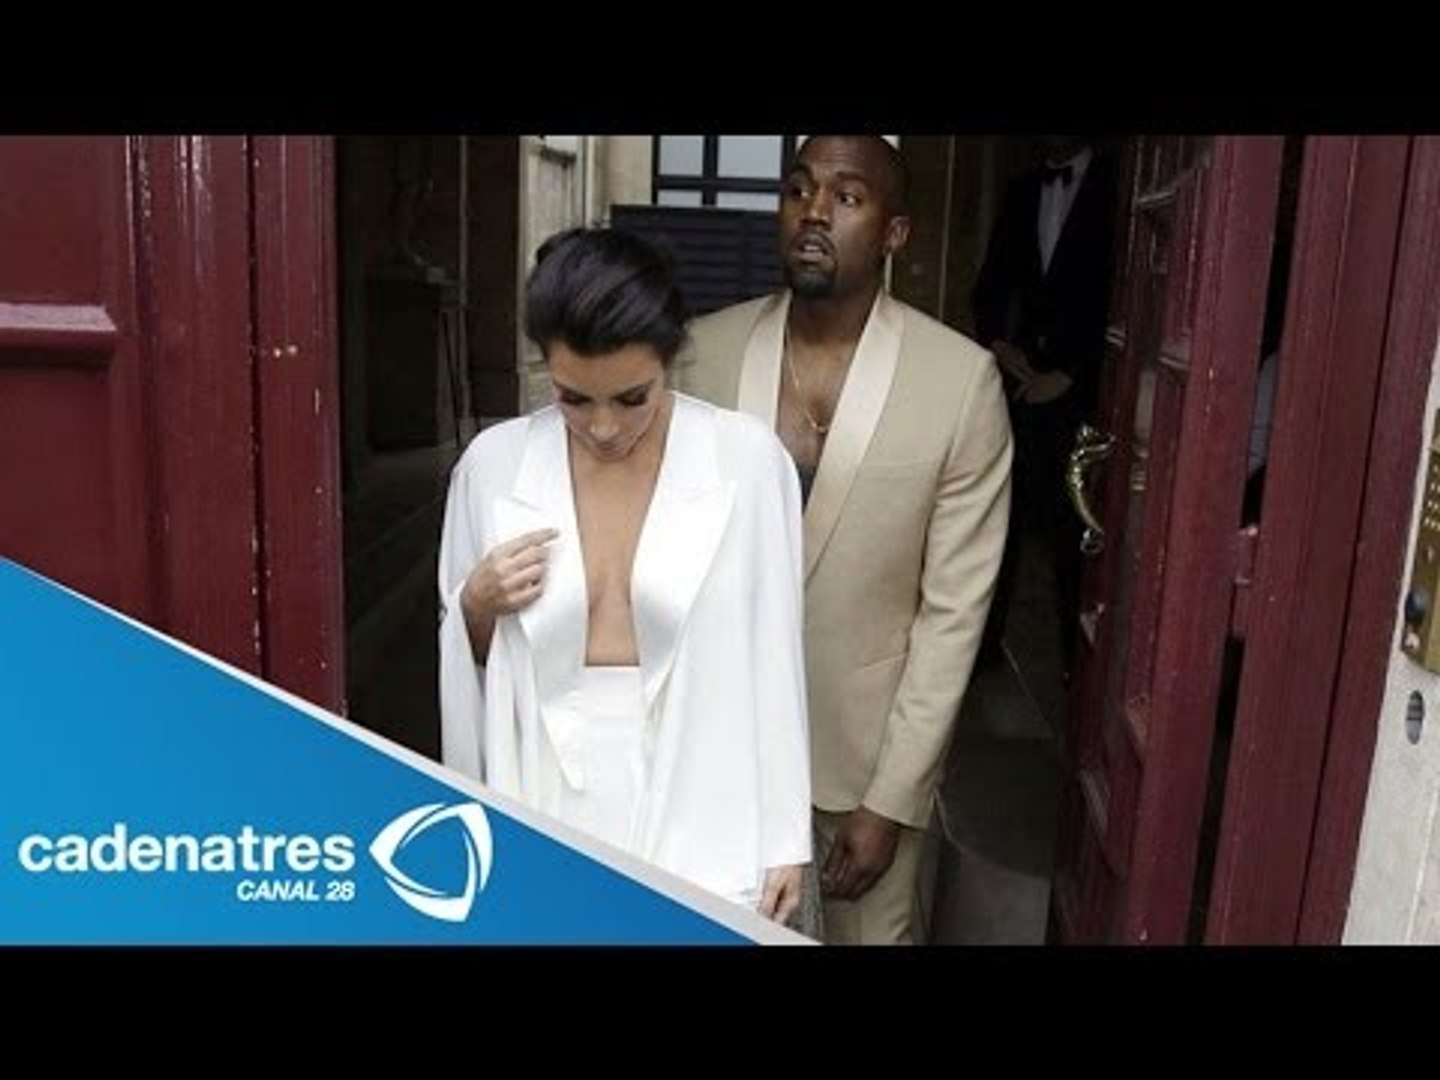 Kim Kardashian y Kanye West se casan en Florencia / Kim Kardashian and Kanye West get married